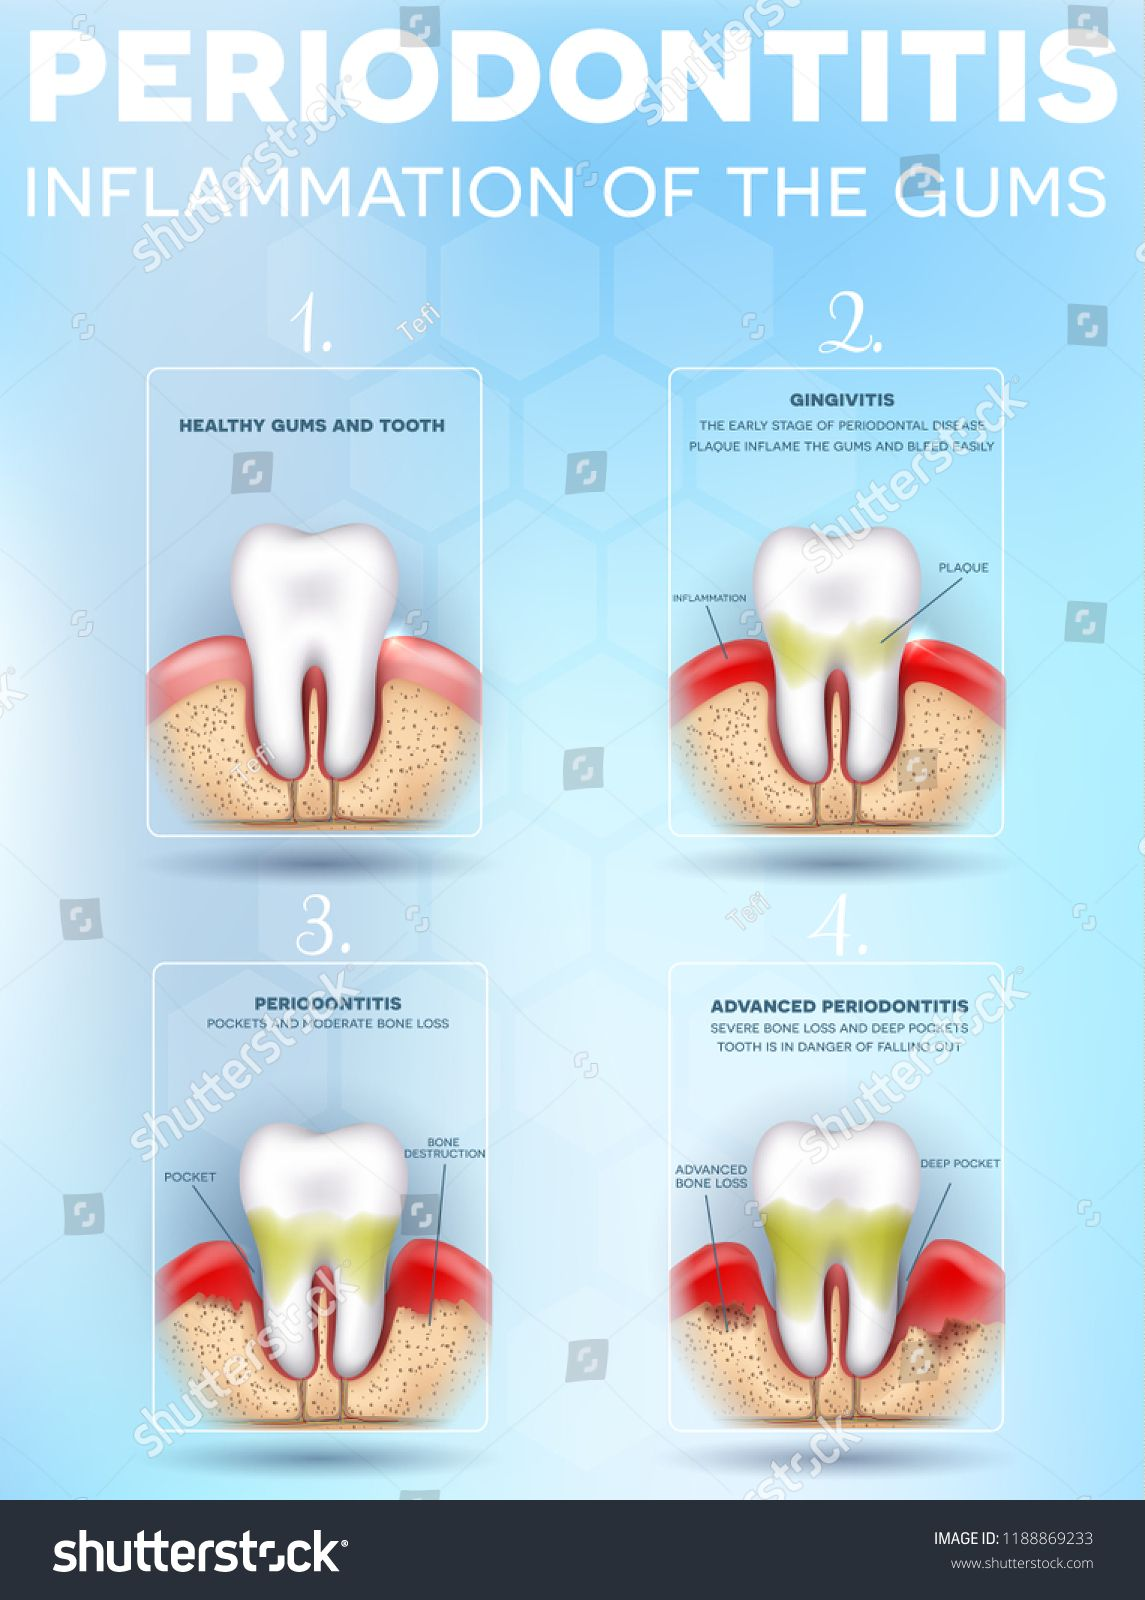 medium resolution of healthy tooth gingivitis and at the end advanced periodontitis medical poster diagram gingivitis periodontitis tooth teeth dental dentistry caries